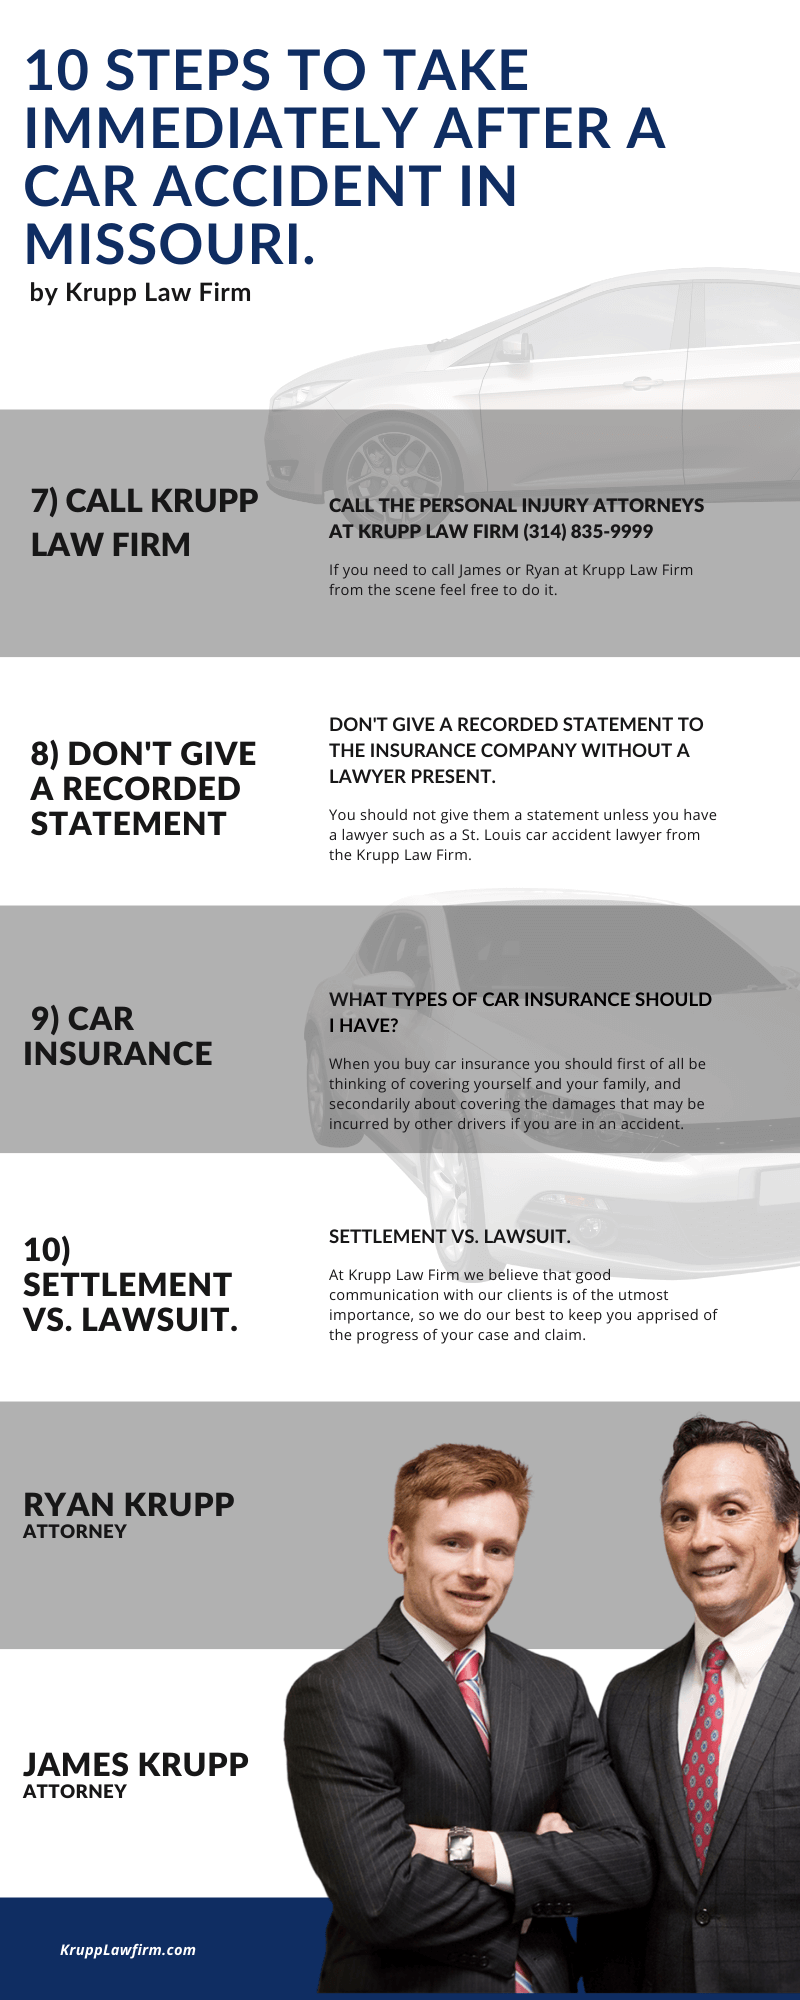 ten steps to take after a car accident infographic 2